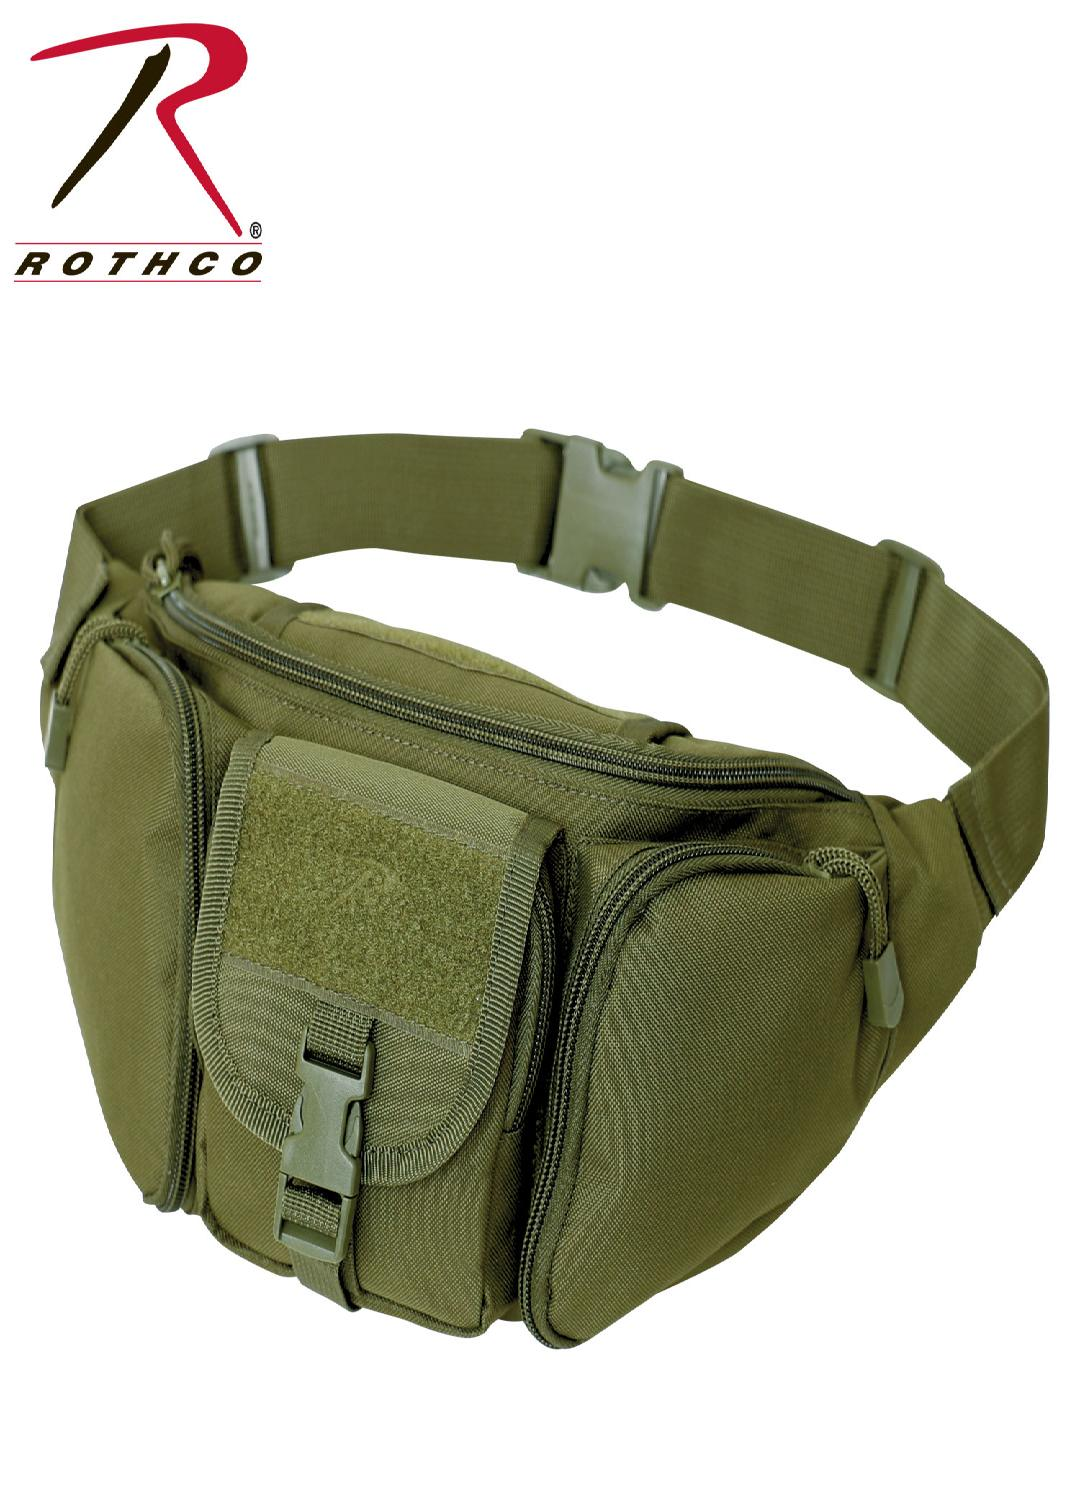 Rothco Tactical Waist Pack - Olive Drab